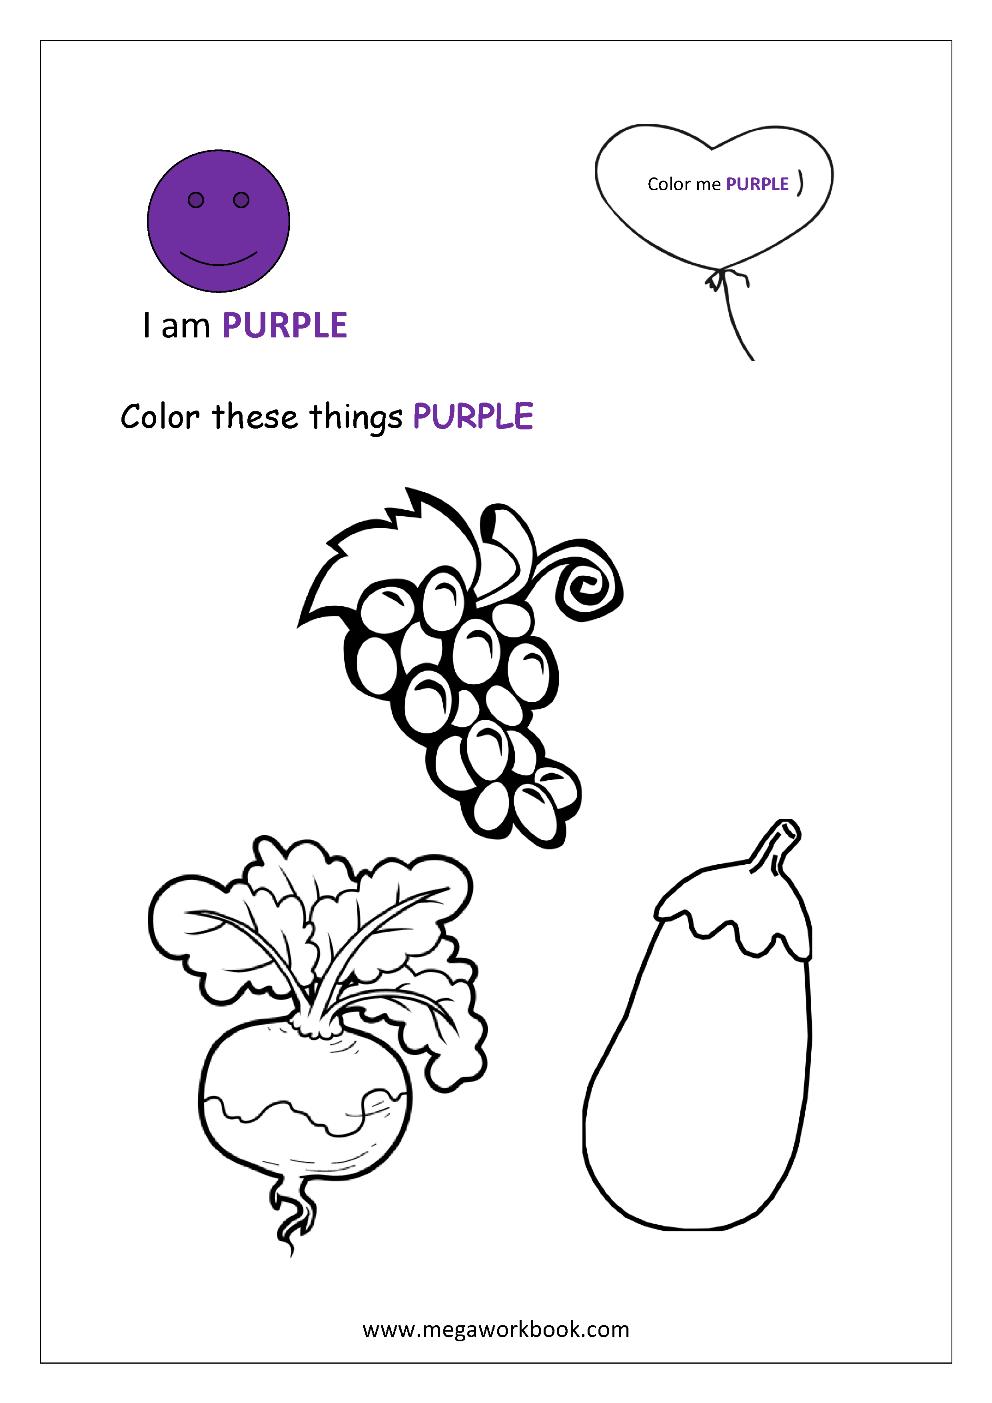 Green Things Colouring Page | Farben lernen, Kinder lernen, Lernen | 1403x992